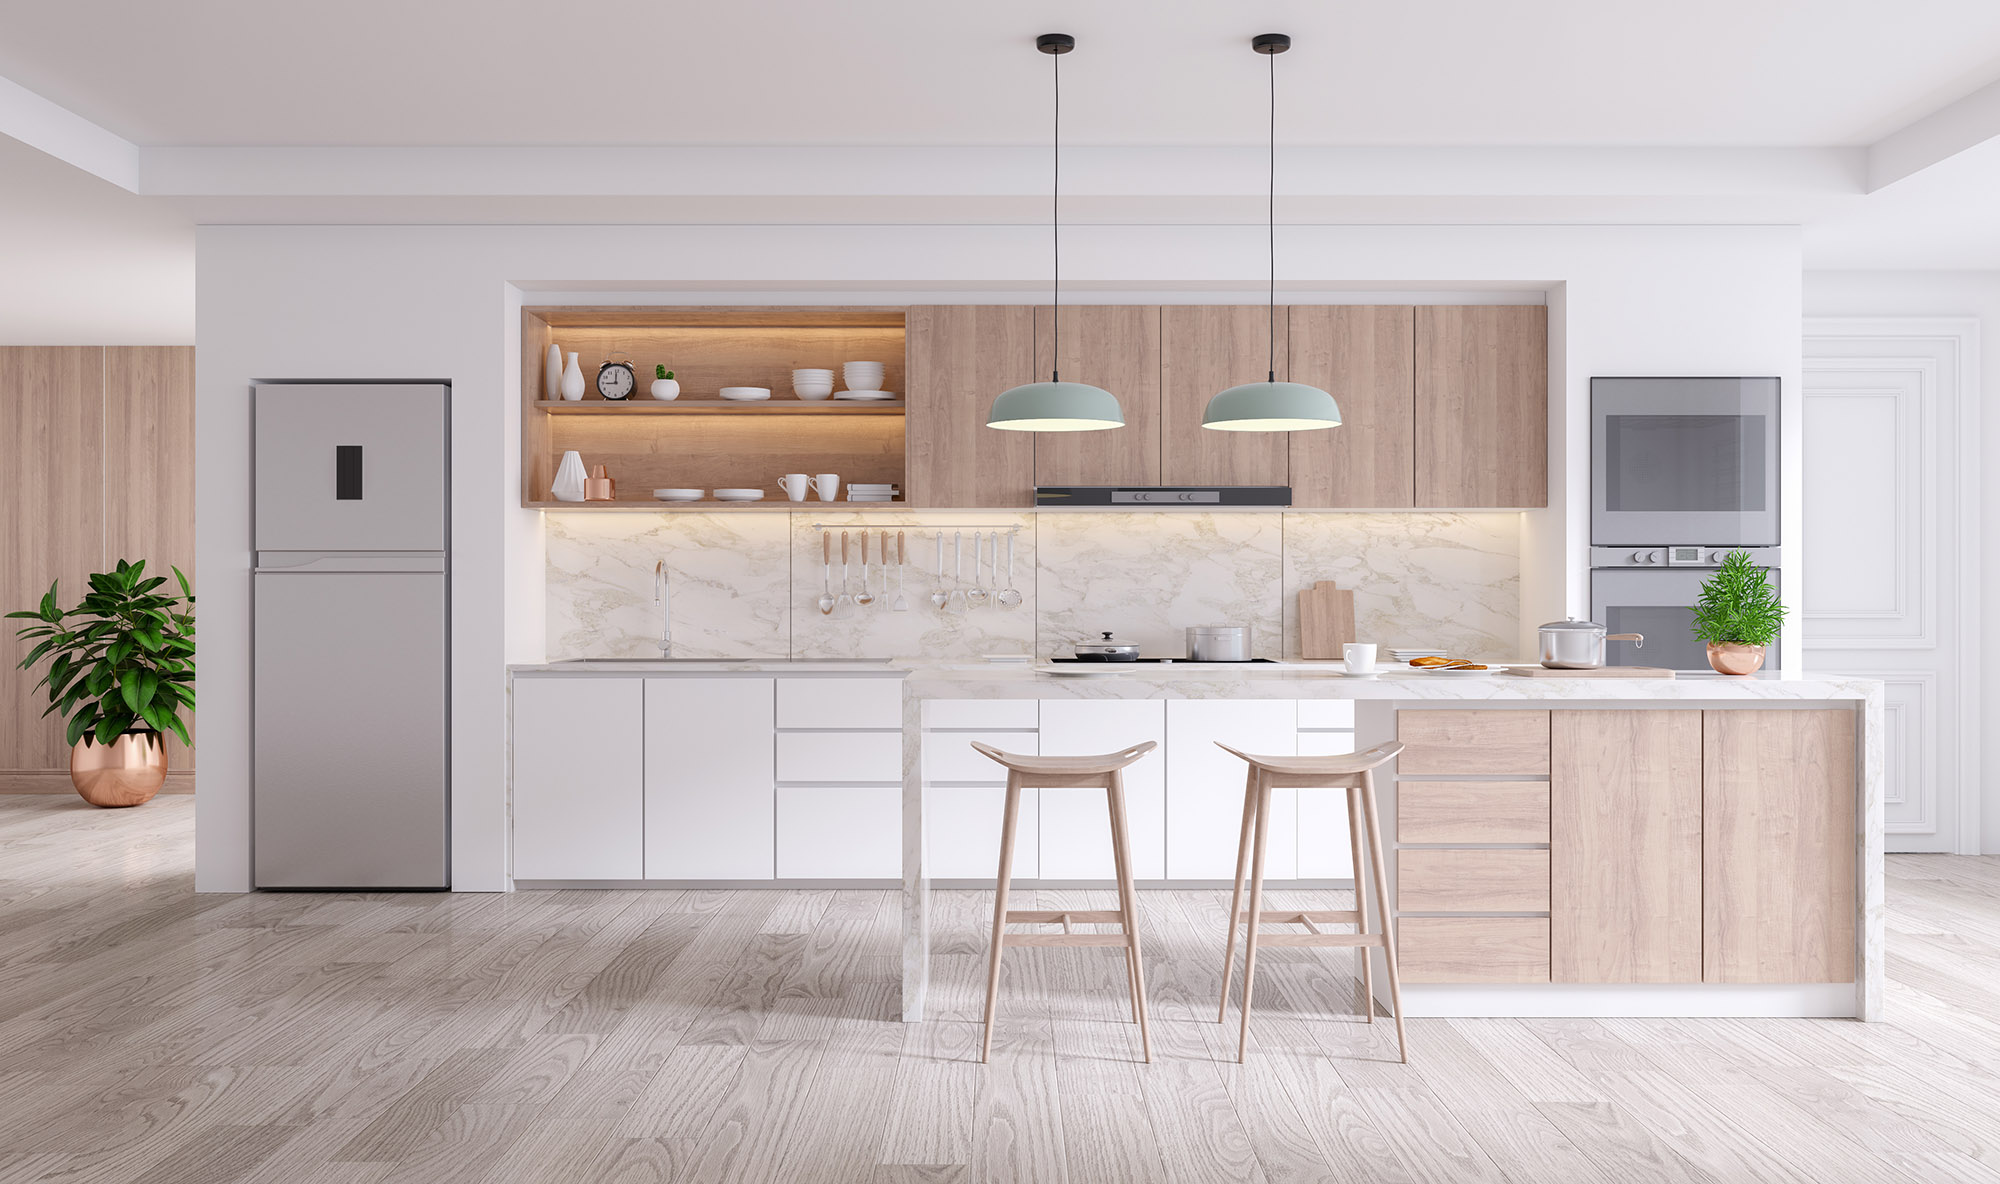 kitchen interiorjpg